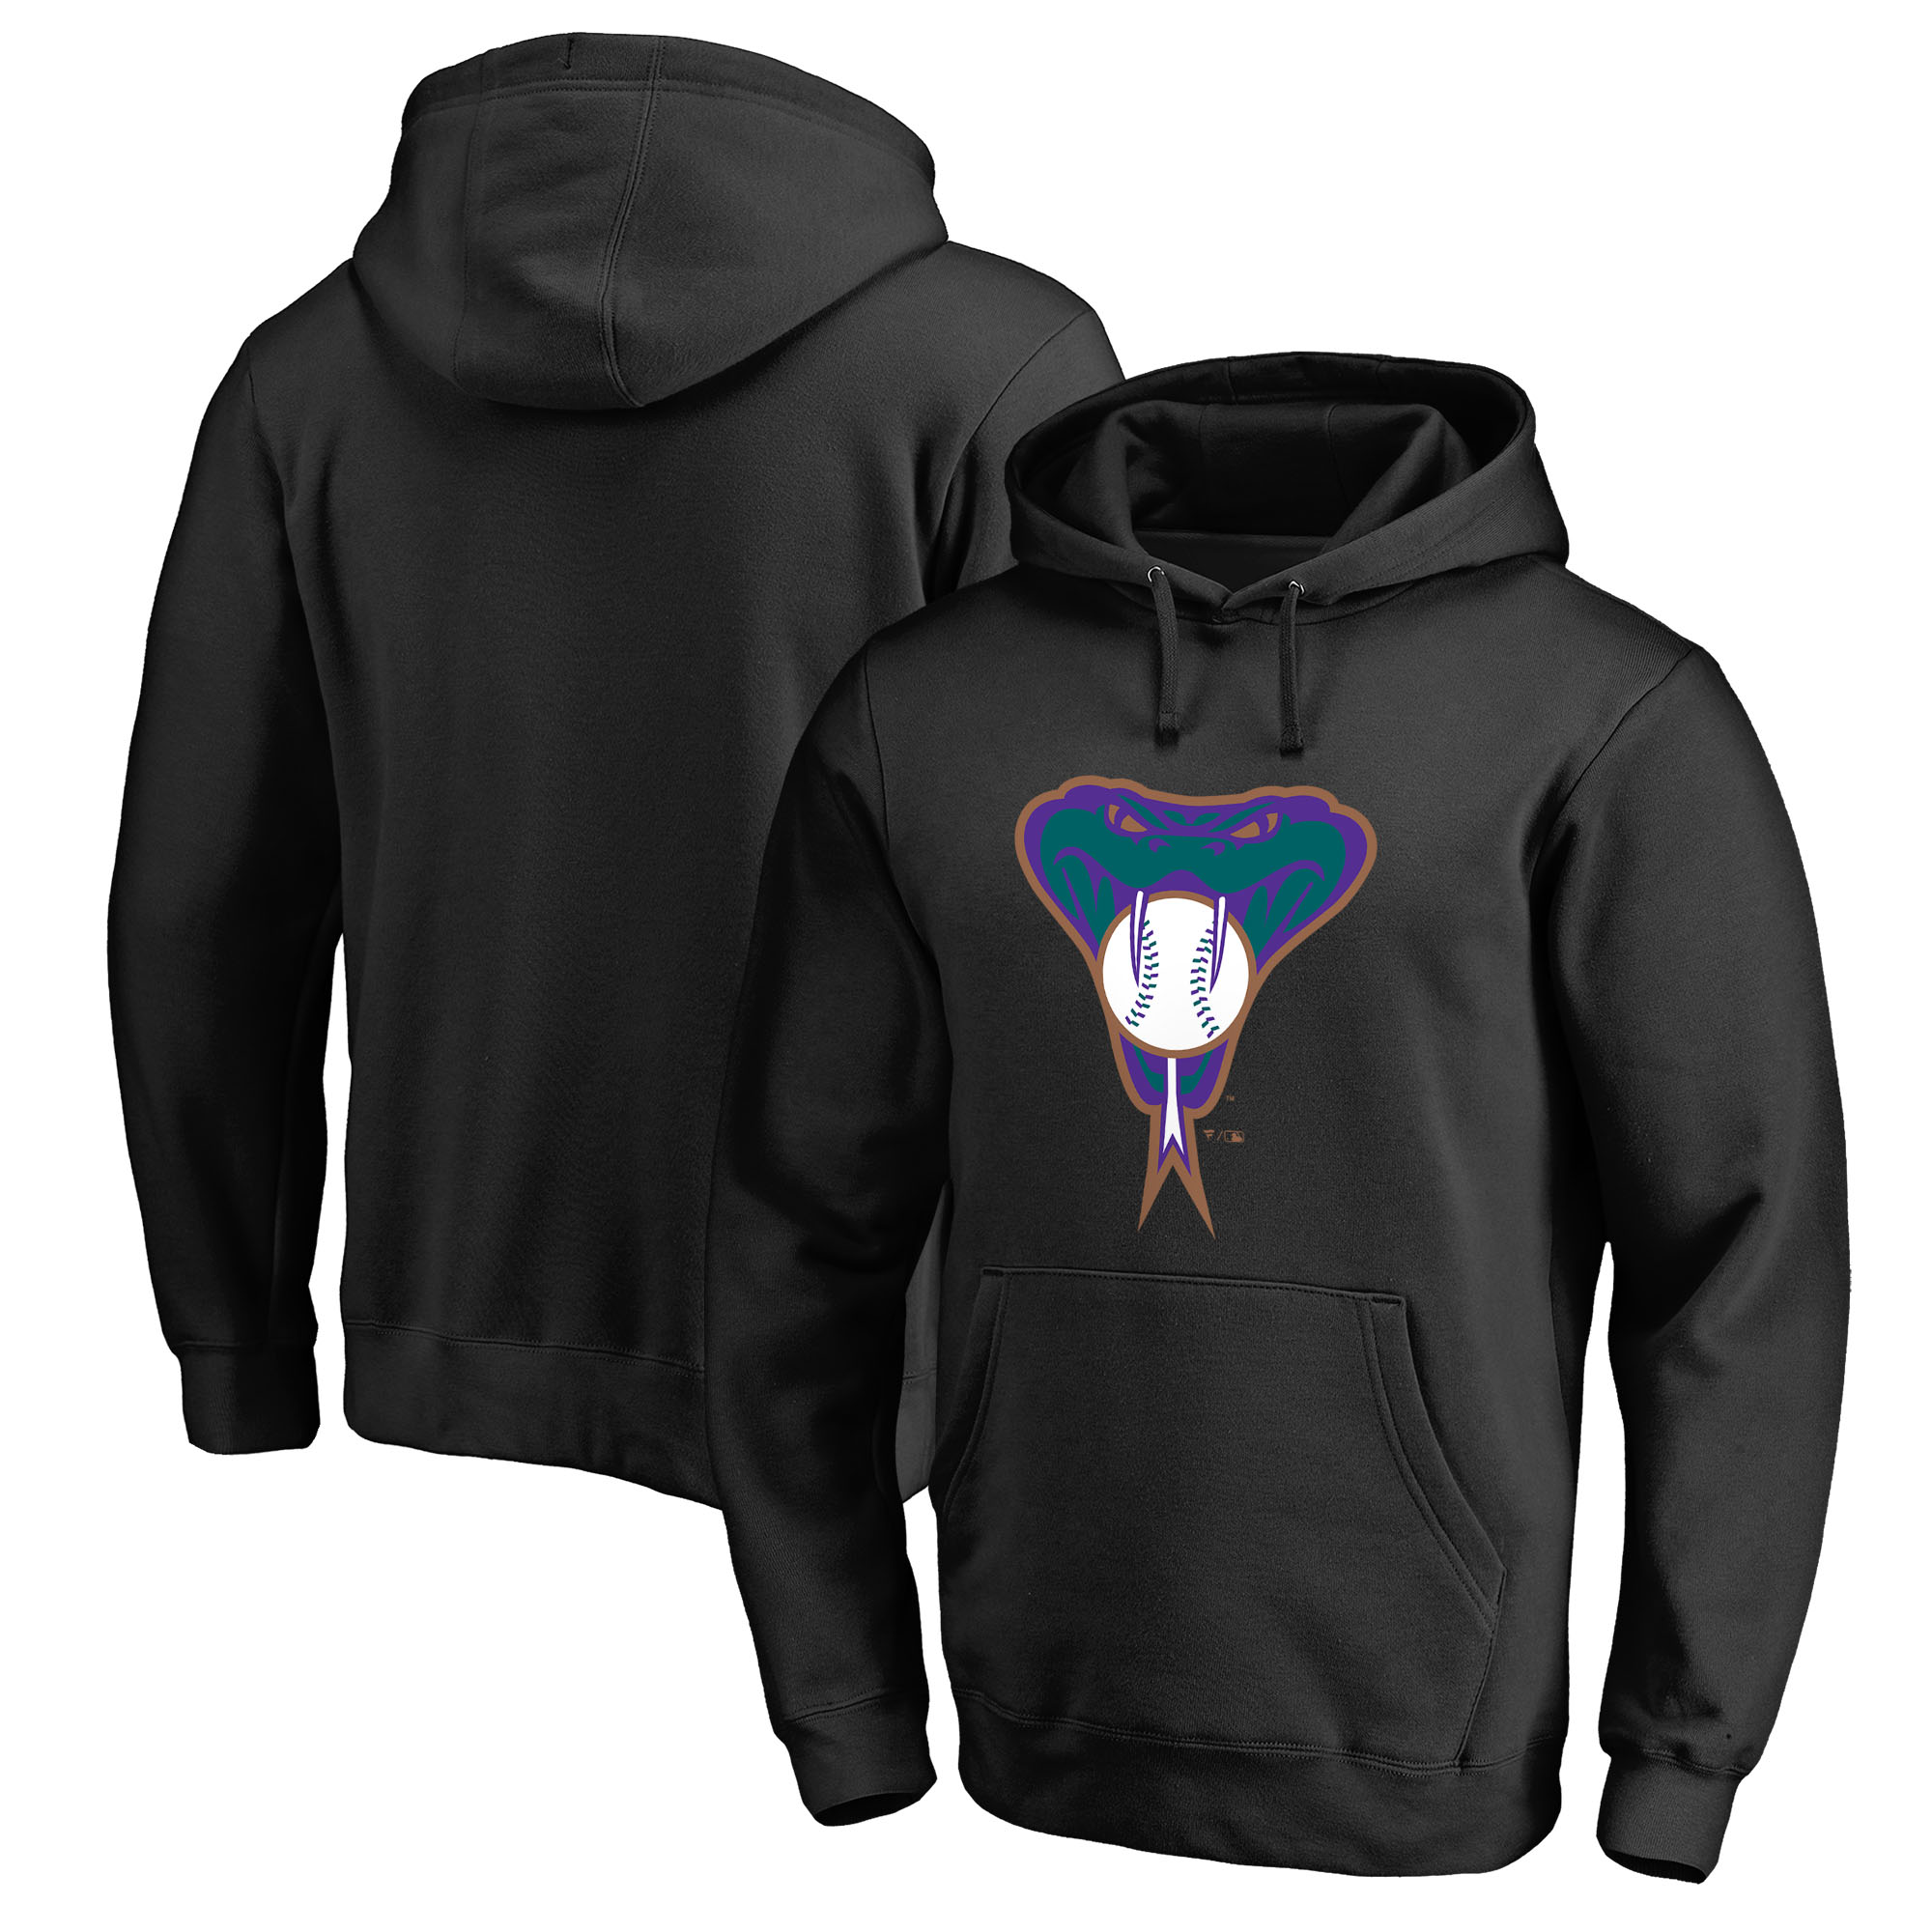 Arizona Diamondbacks Fanatics Branded Cooperstown Collection Huntington Big & Tall Pullover Hoodie - Black